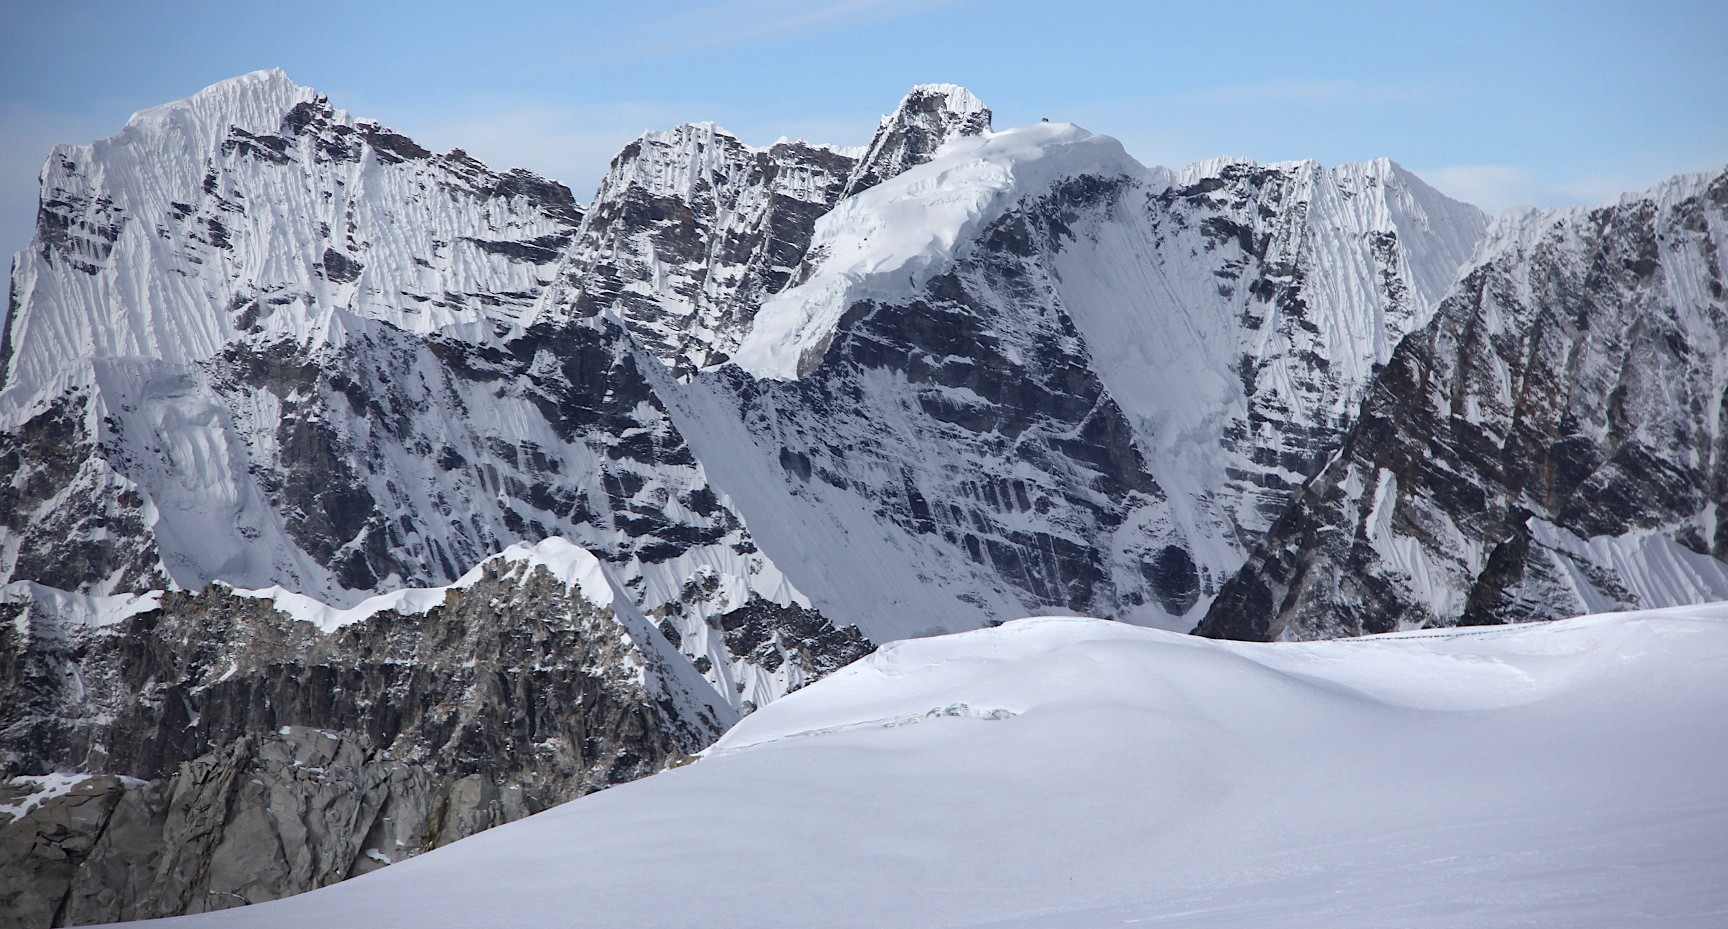 Peaks of the Khumbu from the Sherpani Col